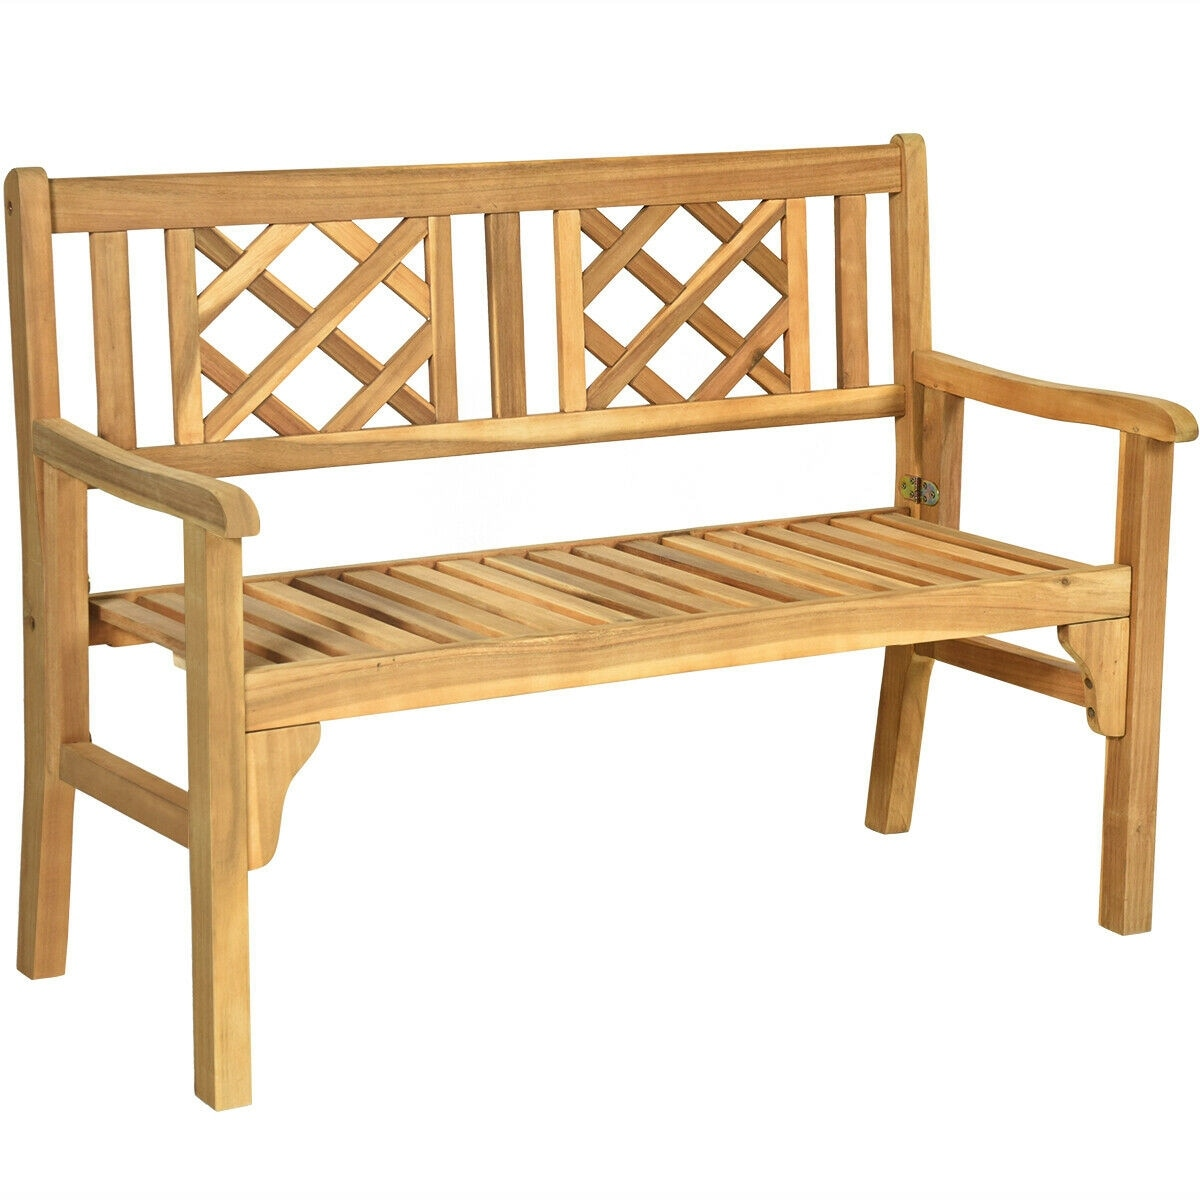 patio foldable bench with curved backrest and armrest natural